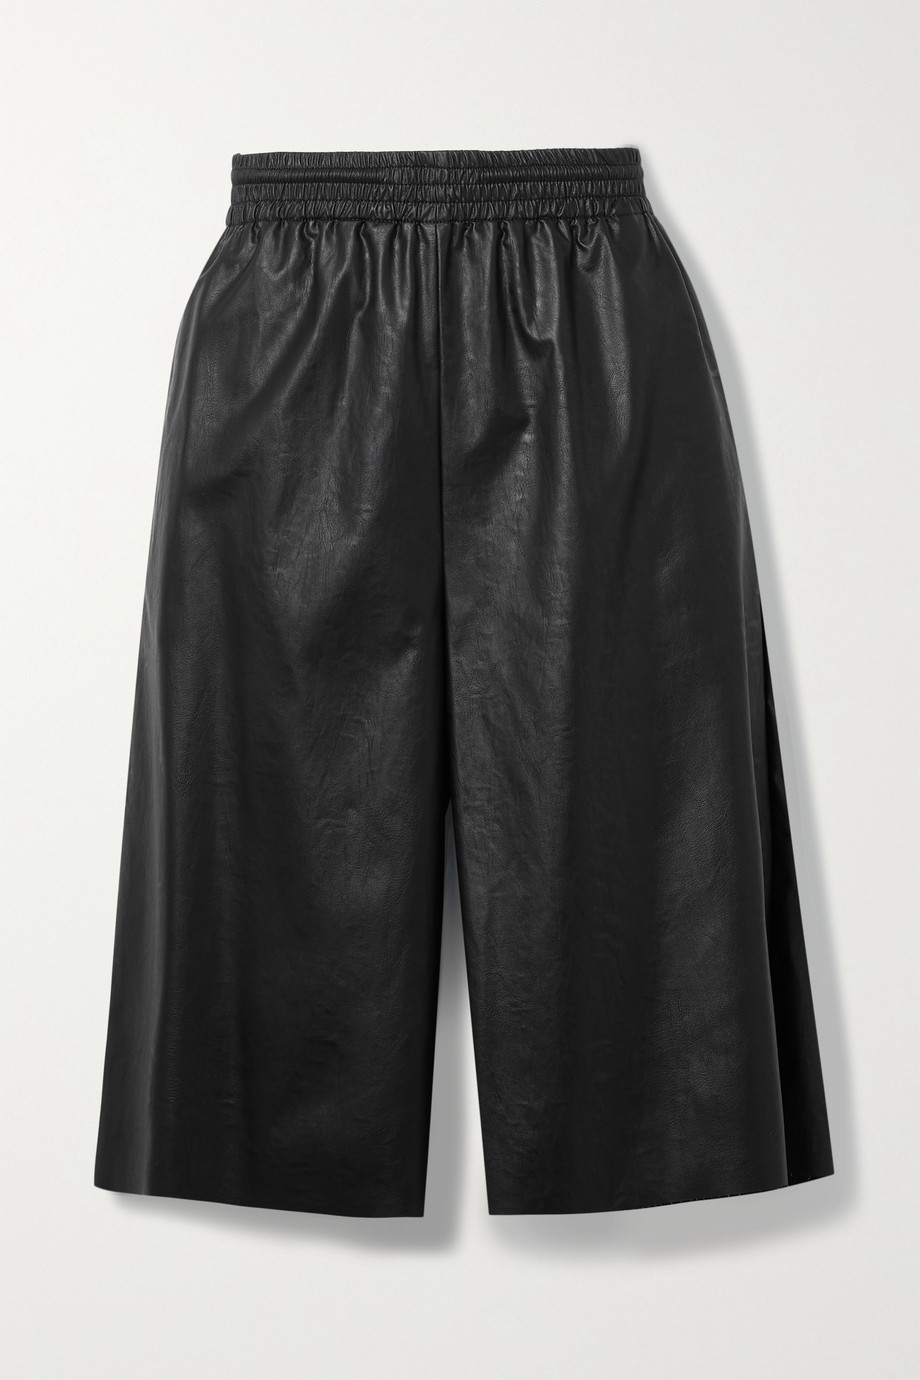 MM6 Maison Margiela Faux leather shorts